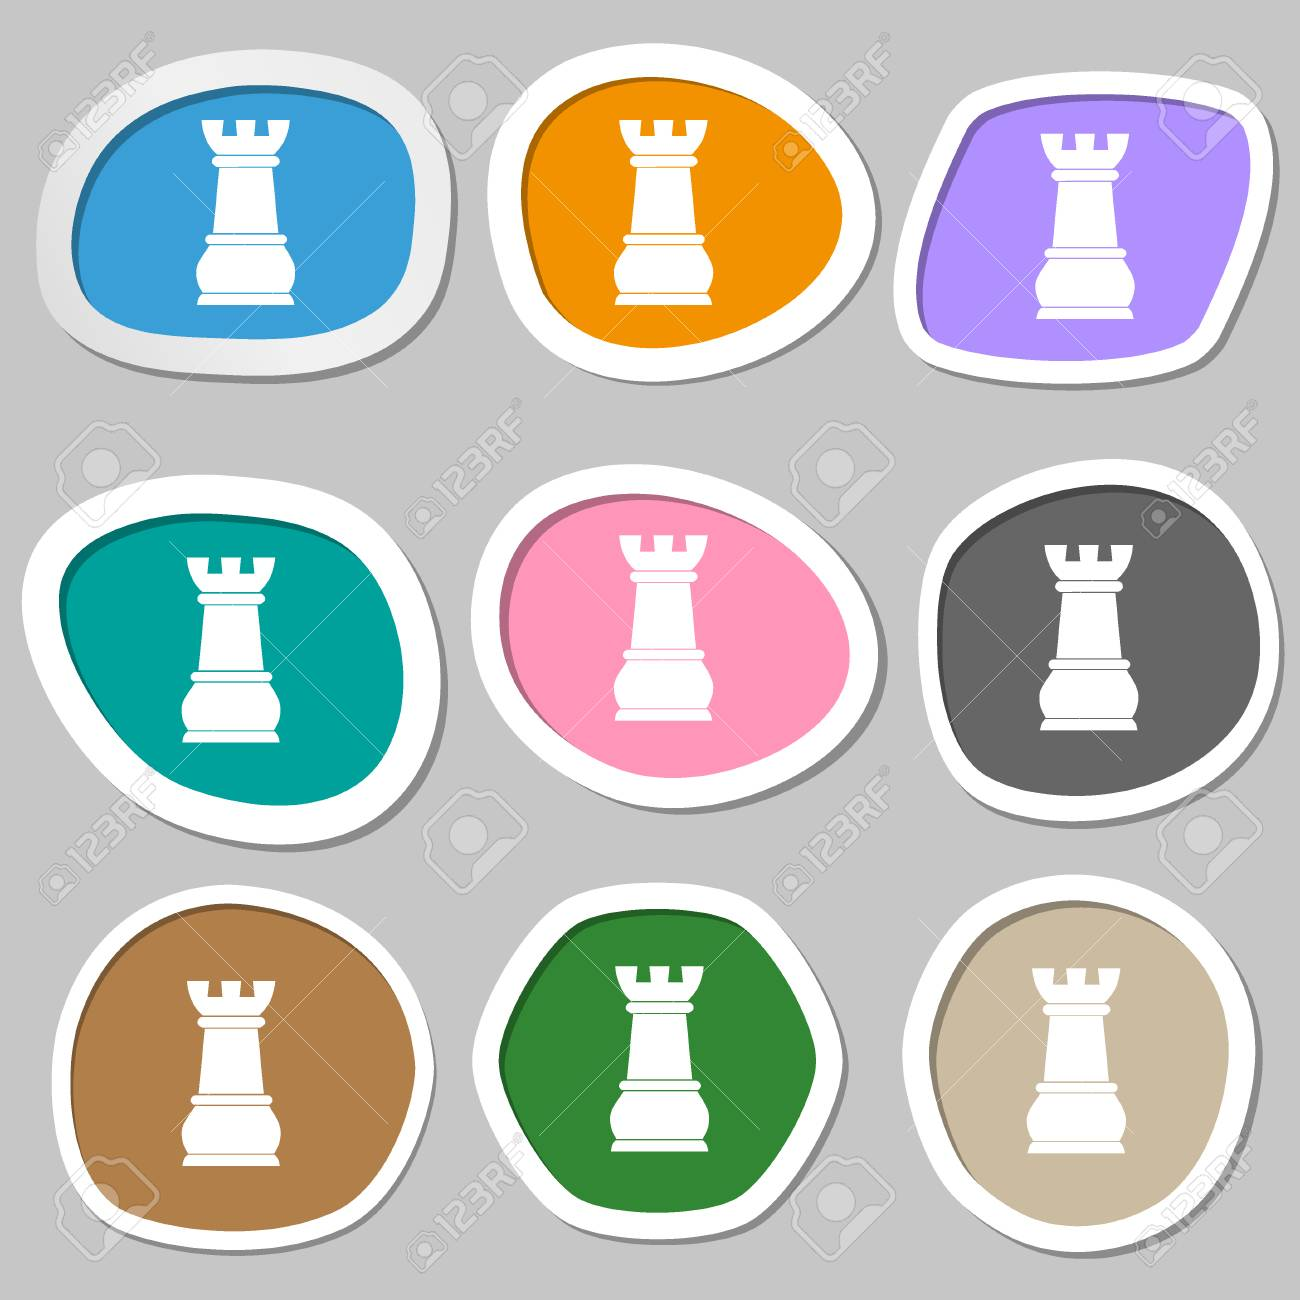 Chess Rook Symbols Multicolored Paper Stickers Illustration